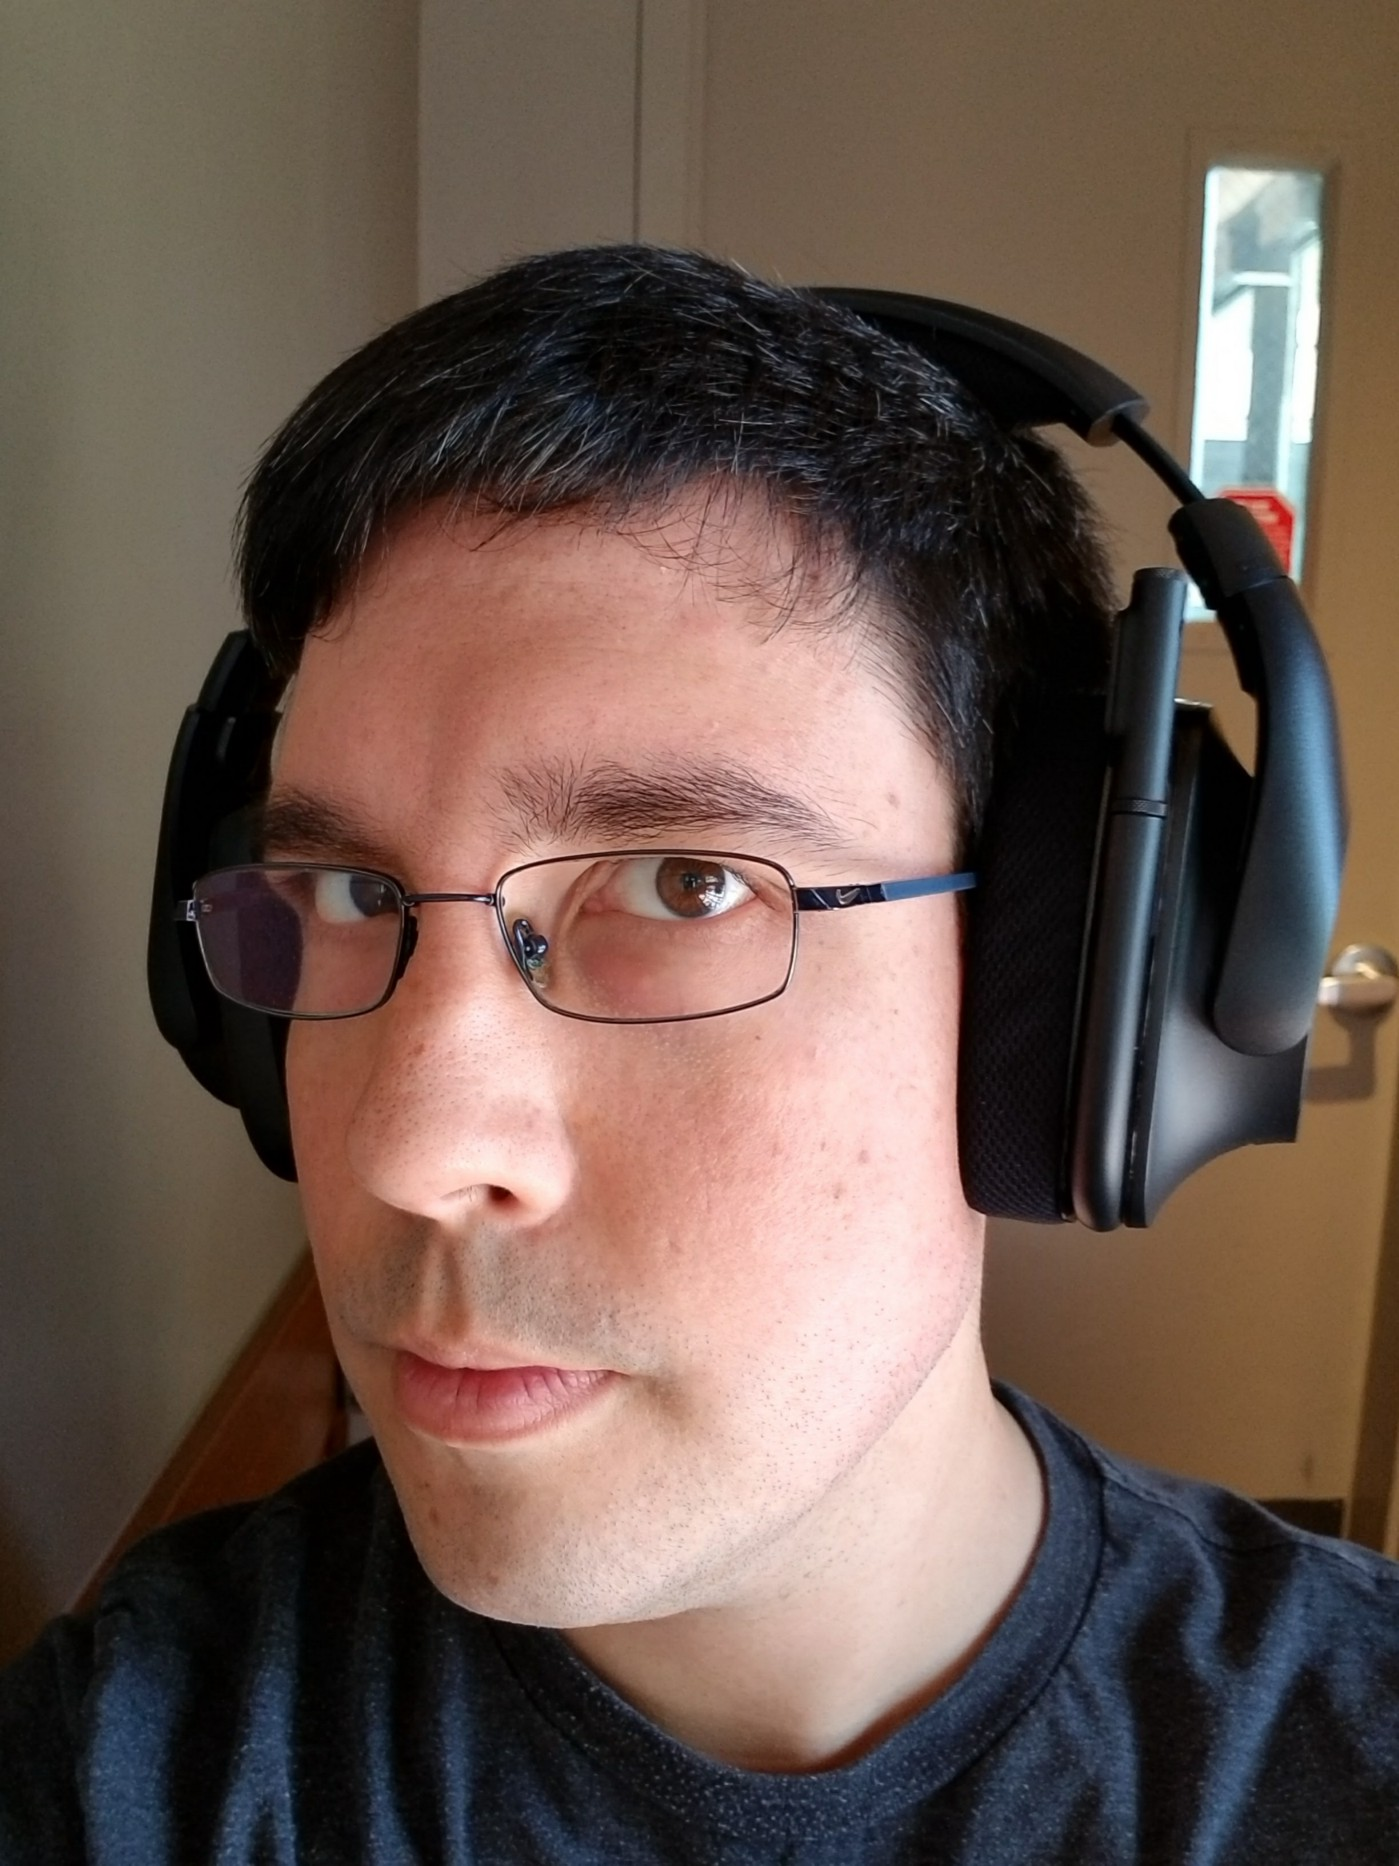 Logitech G533 Wireless Gaming Headset Review: The Best Headset in